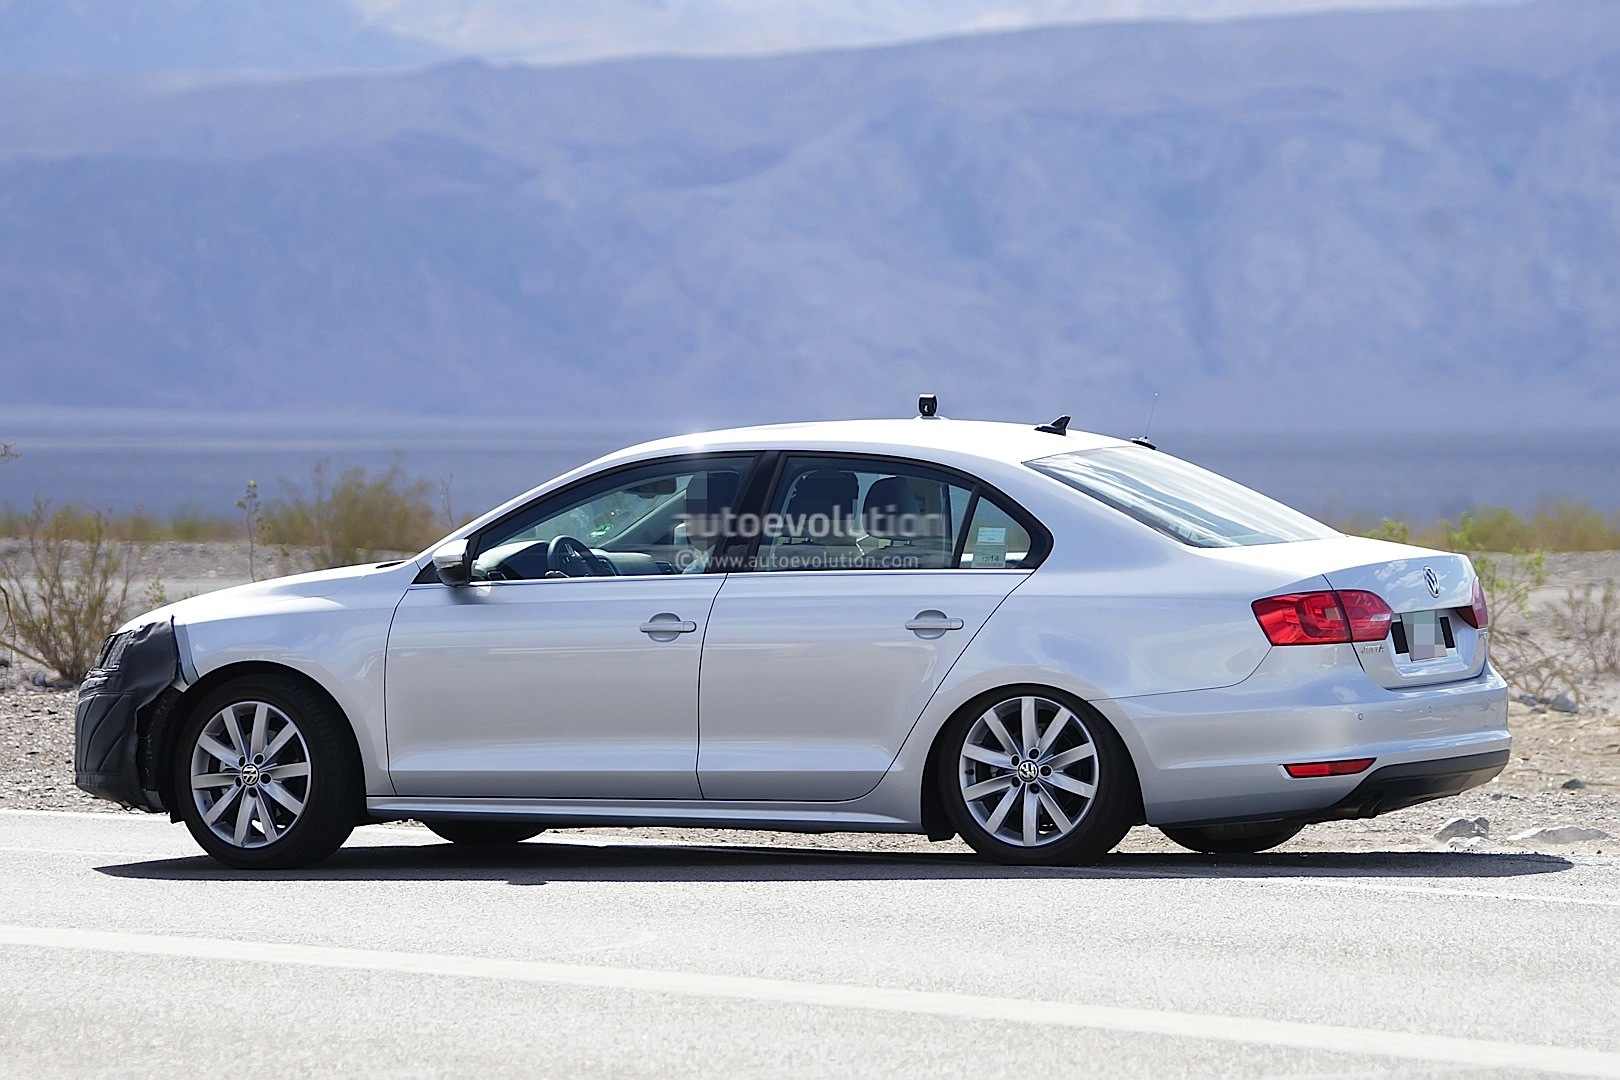 2015 volkswagen jetta facelift to debut at 2014 new york auto show autoevolution. Black Bedroom Furniture Sets. Home Design Ideas